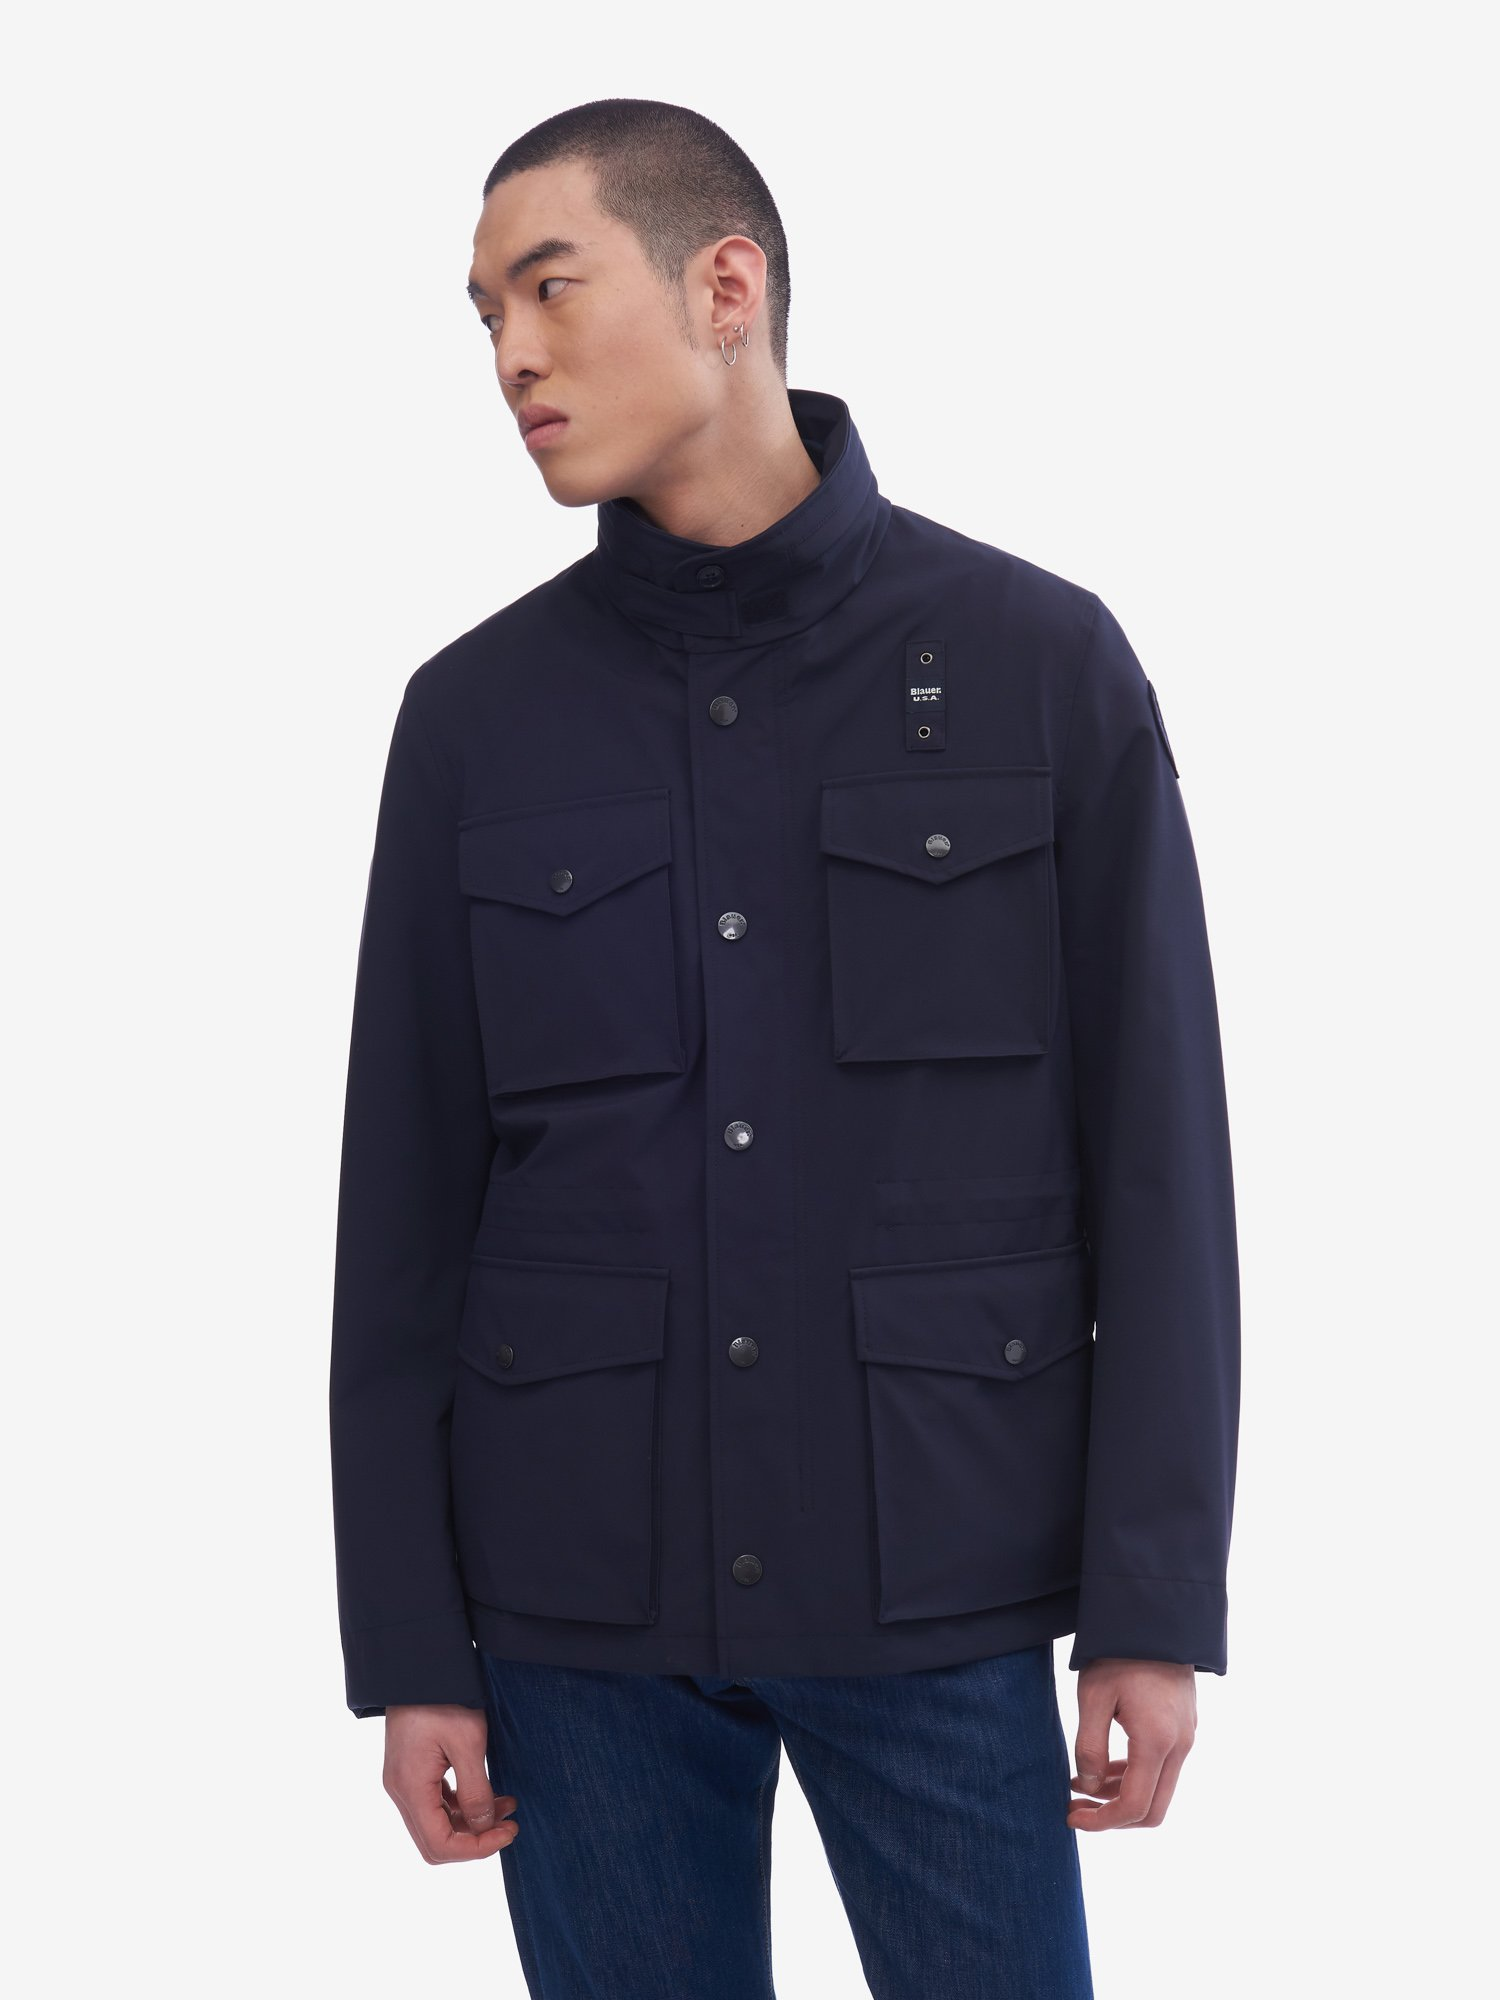 Blauer - NEOPRENE UNLINED FIELD JACKET - Cadet Blue - Blauer